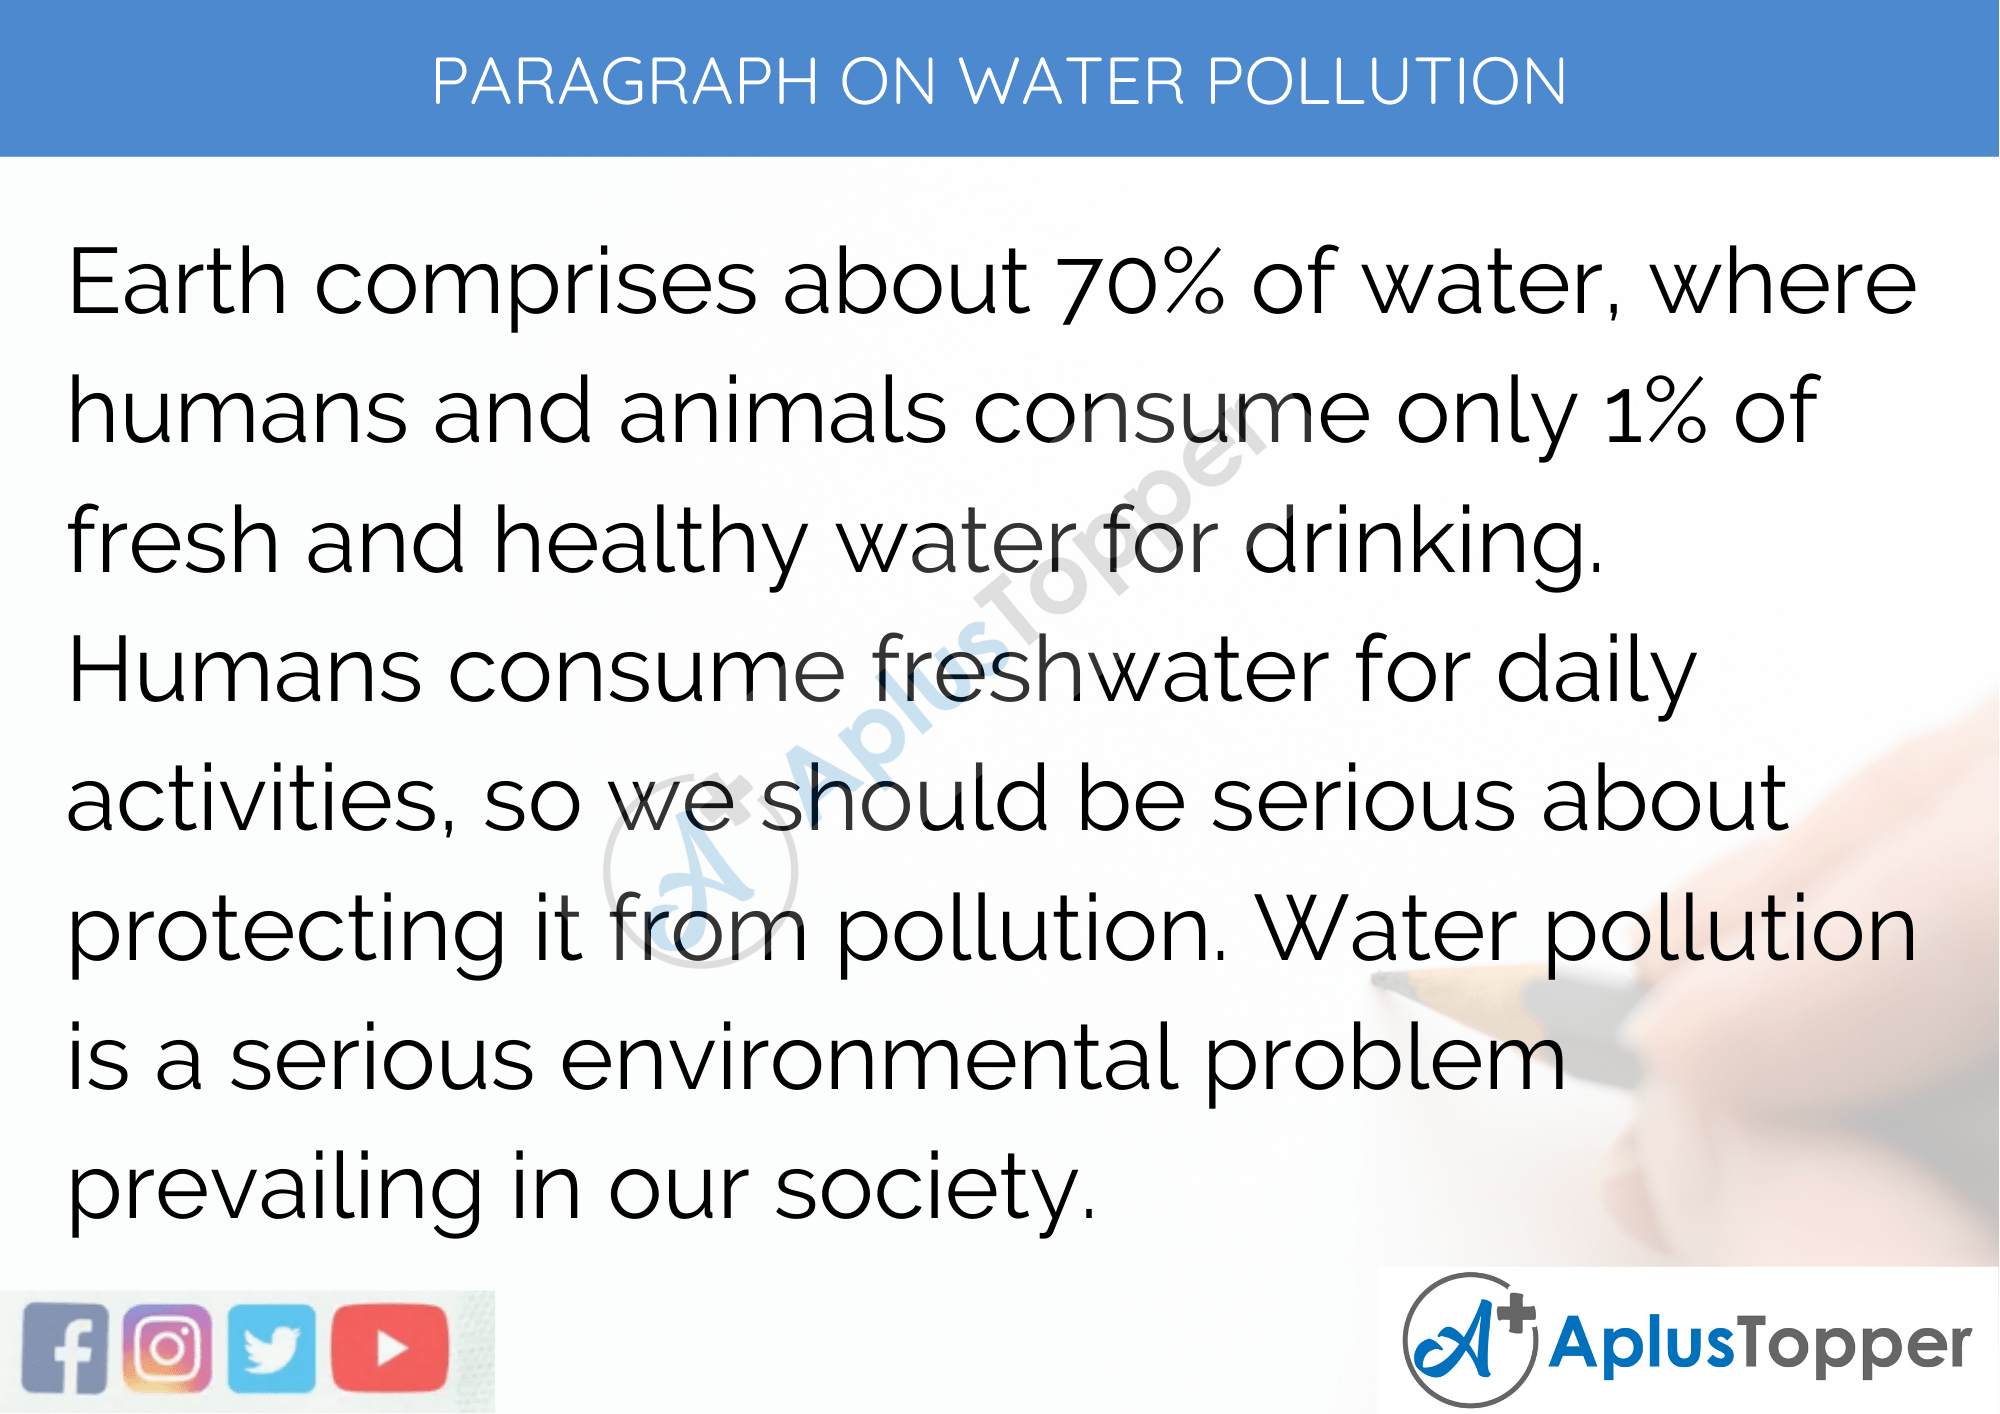 Paragraph on Water Pollution - 250 to 300 Words for Classes 9, 10, 11, and 12, And Competitive Exam Aspirants